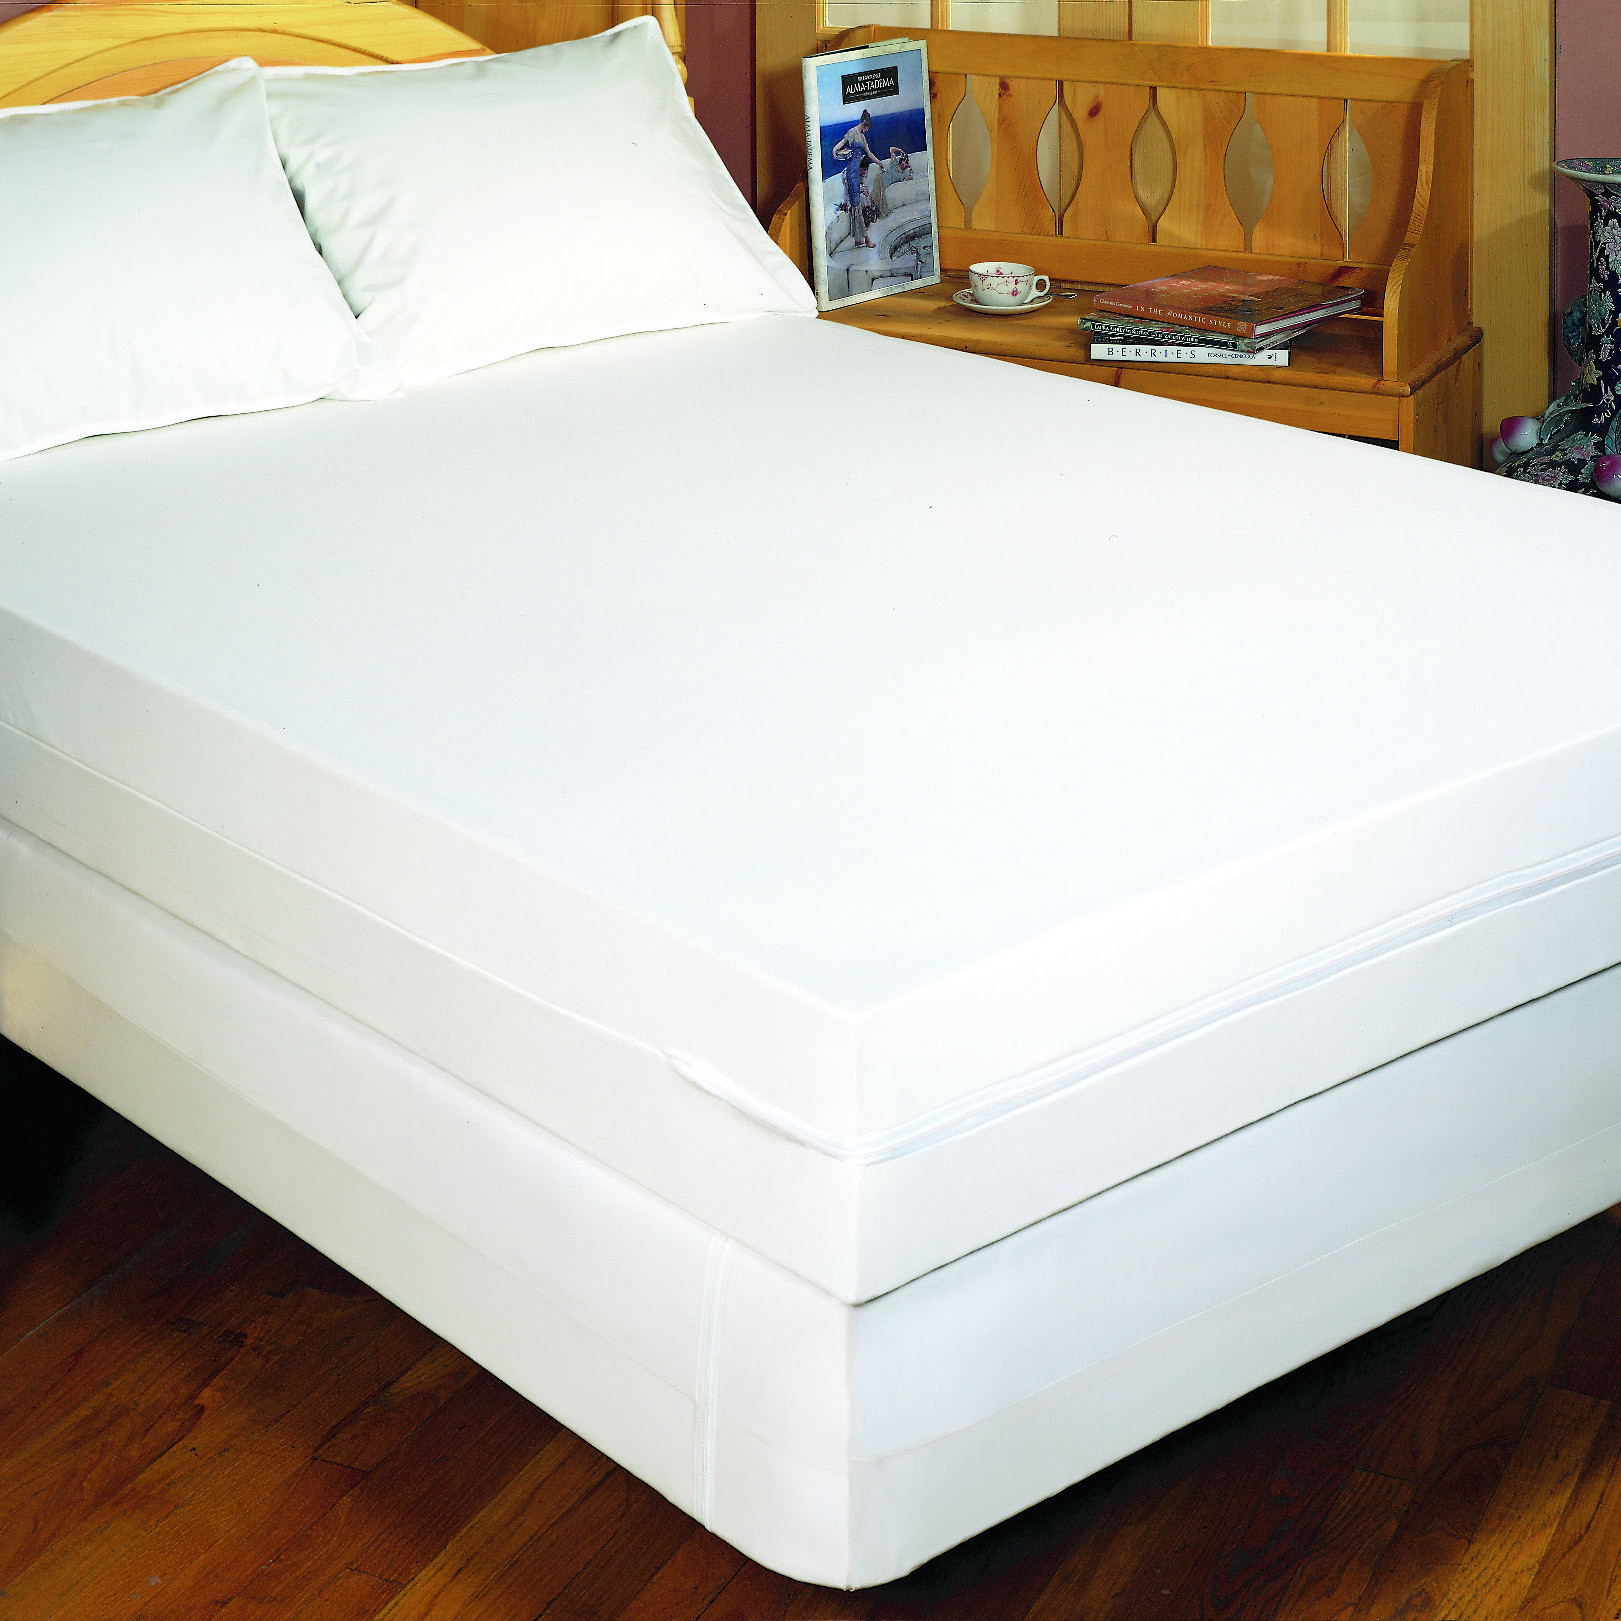 Bed box spring cover cool source get proper mattress for Sofa bed zippered mattress cover